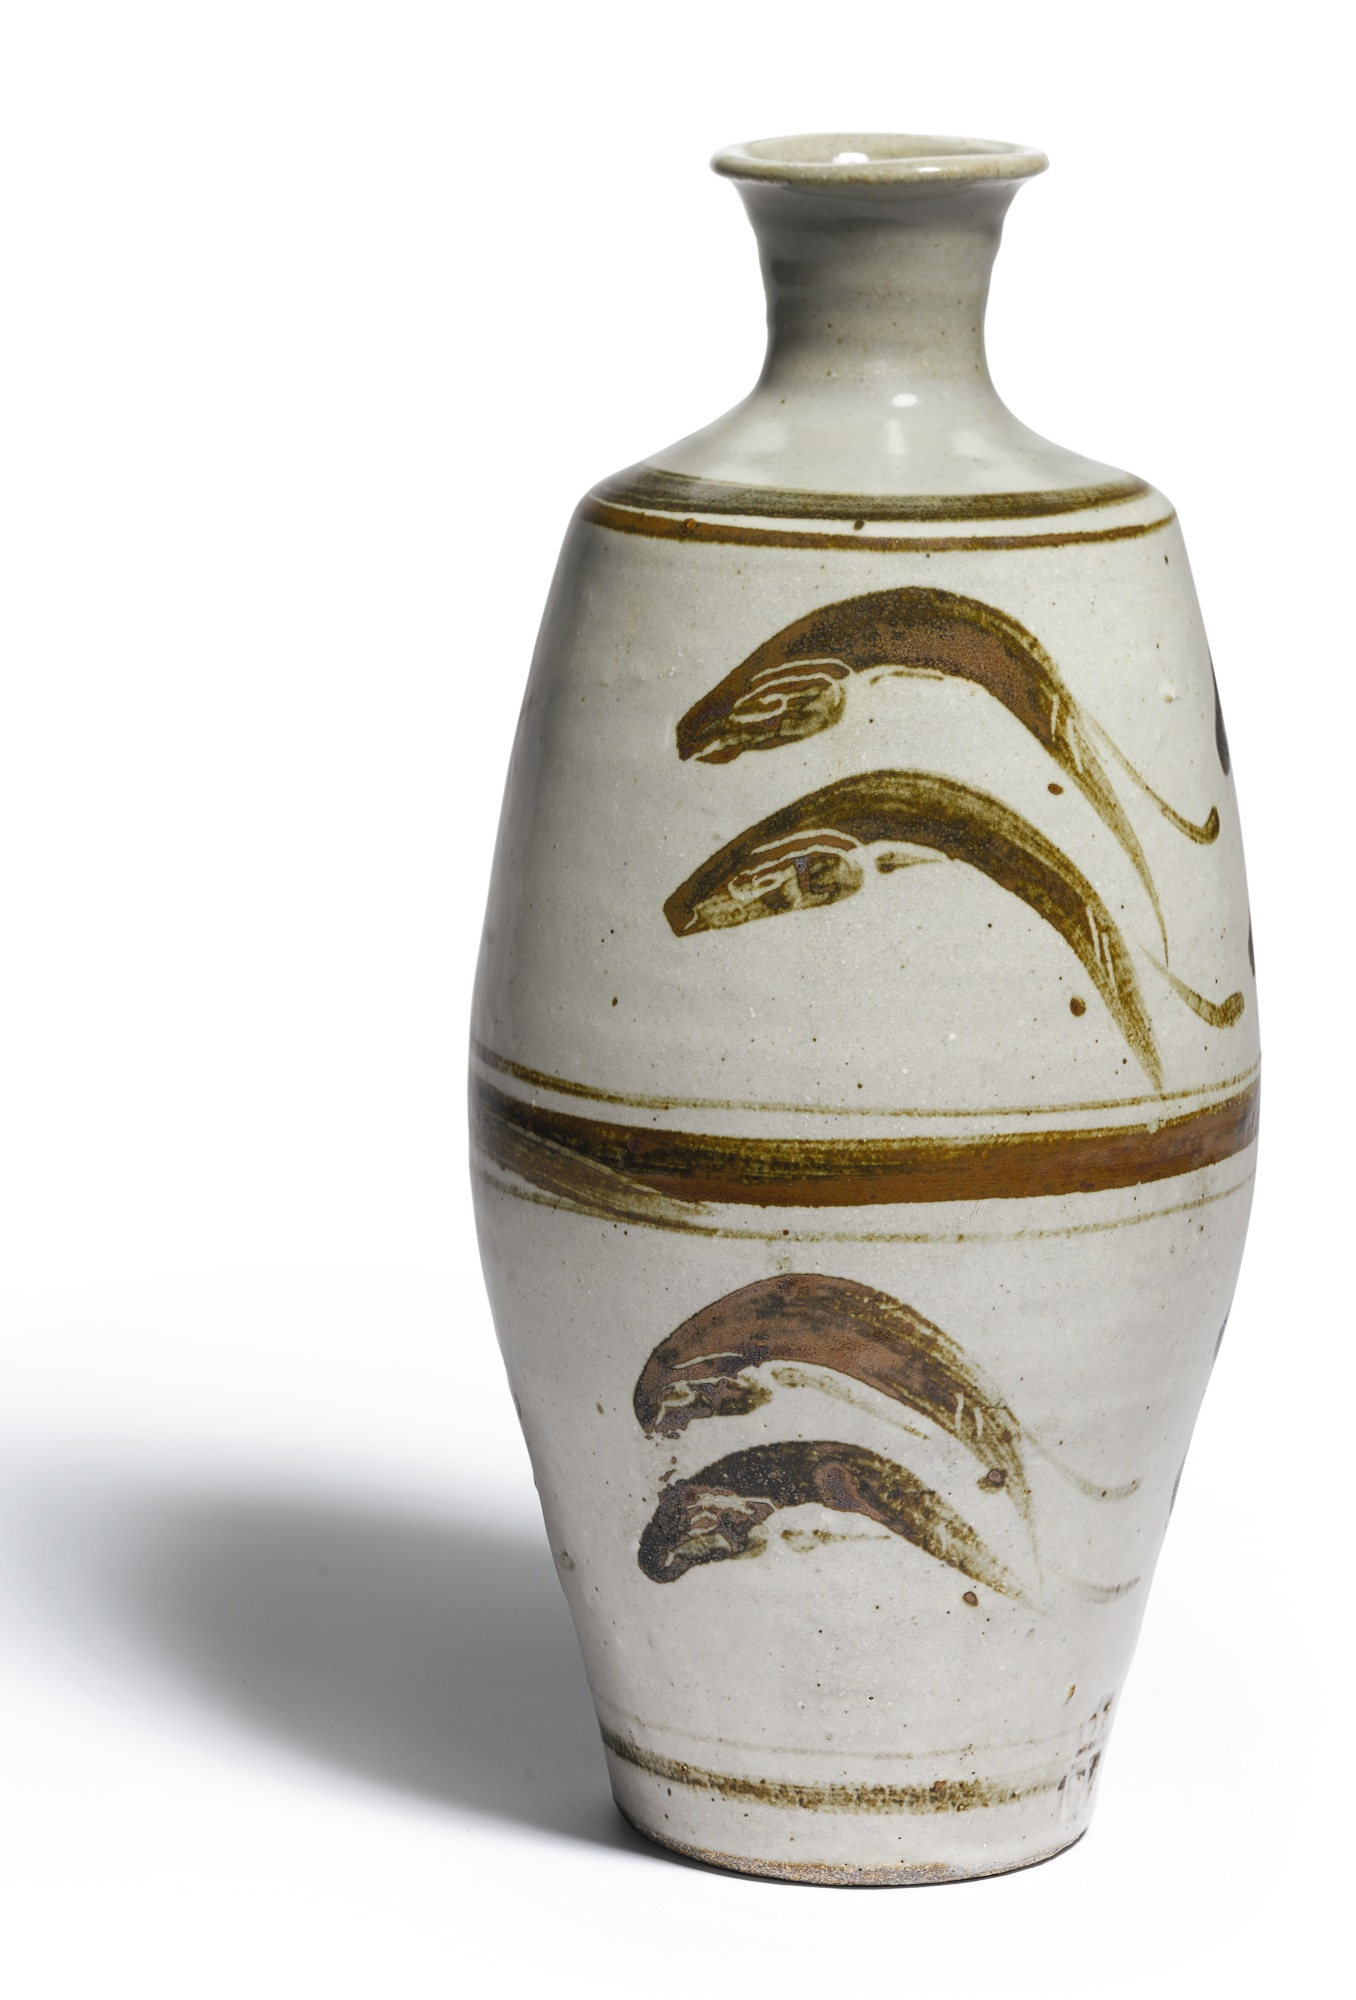 Bernard Leach-Vase With'Leaping Fish' Design-1969